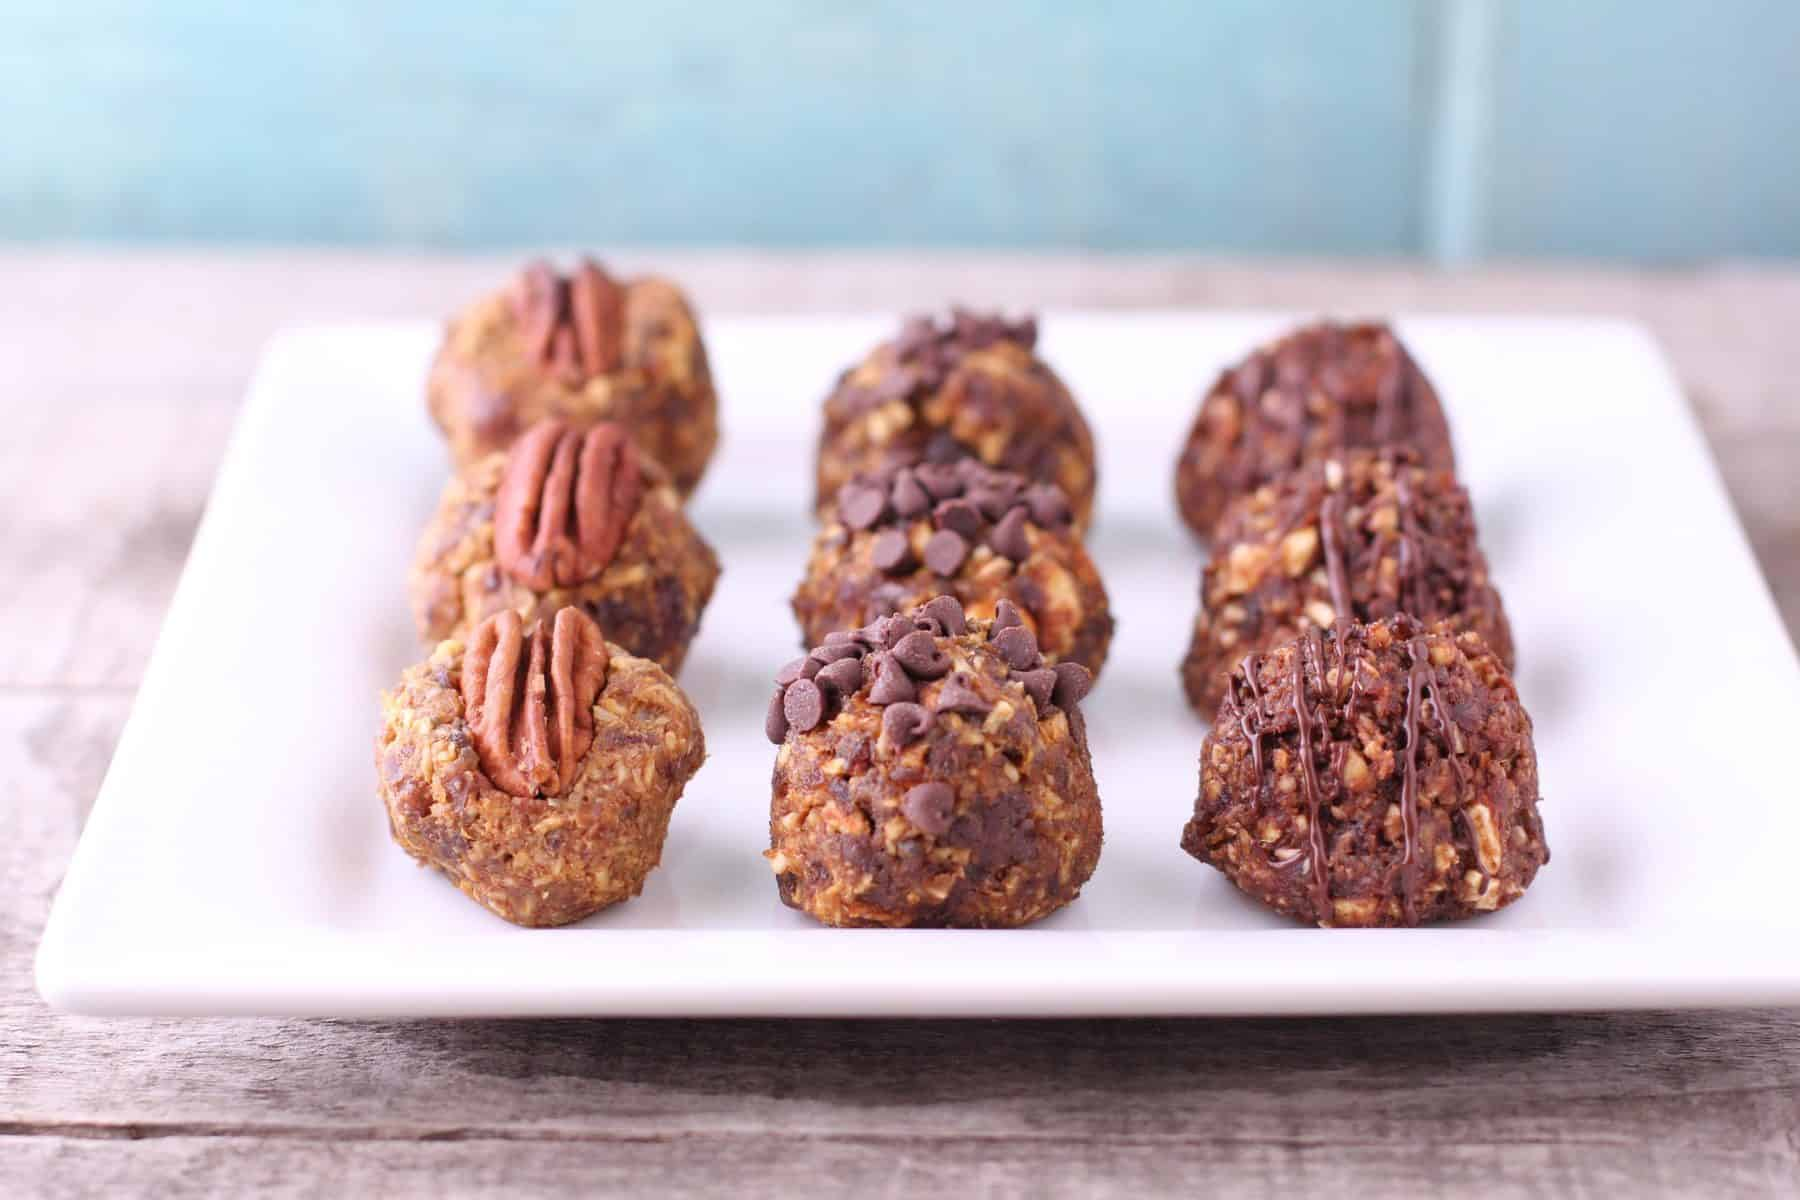 You have to try these 3 easy pumpkin energy ball recipes! From pumpkin pecan, to pumpkin chocolate chip, to pumpkin balls drizzled in dark chocolate. Yum!